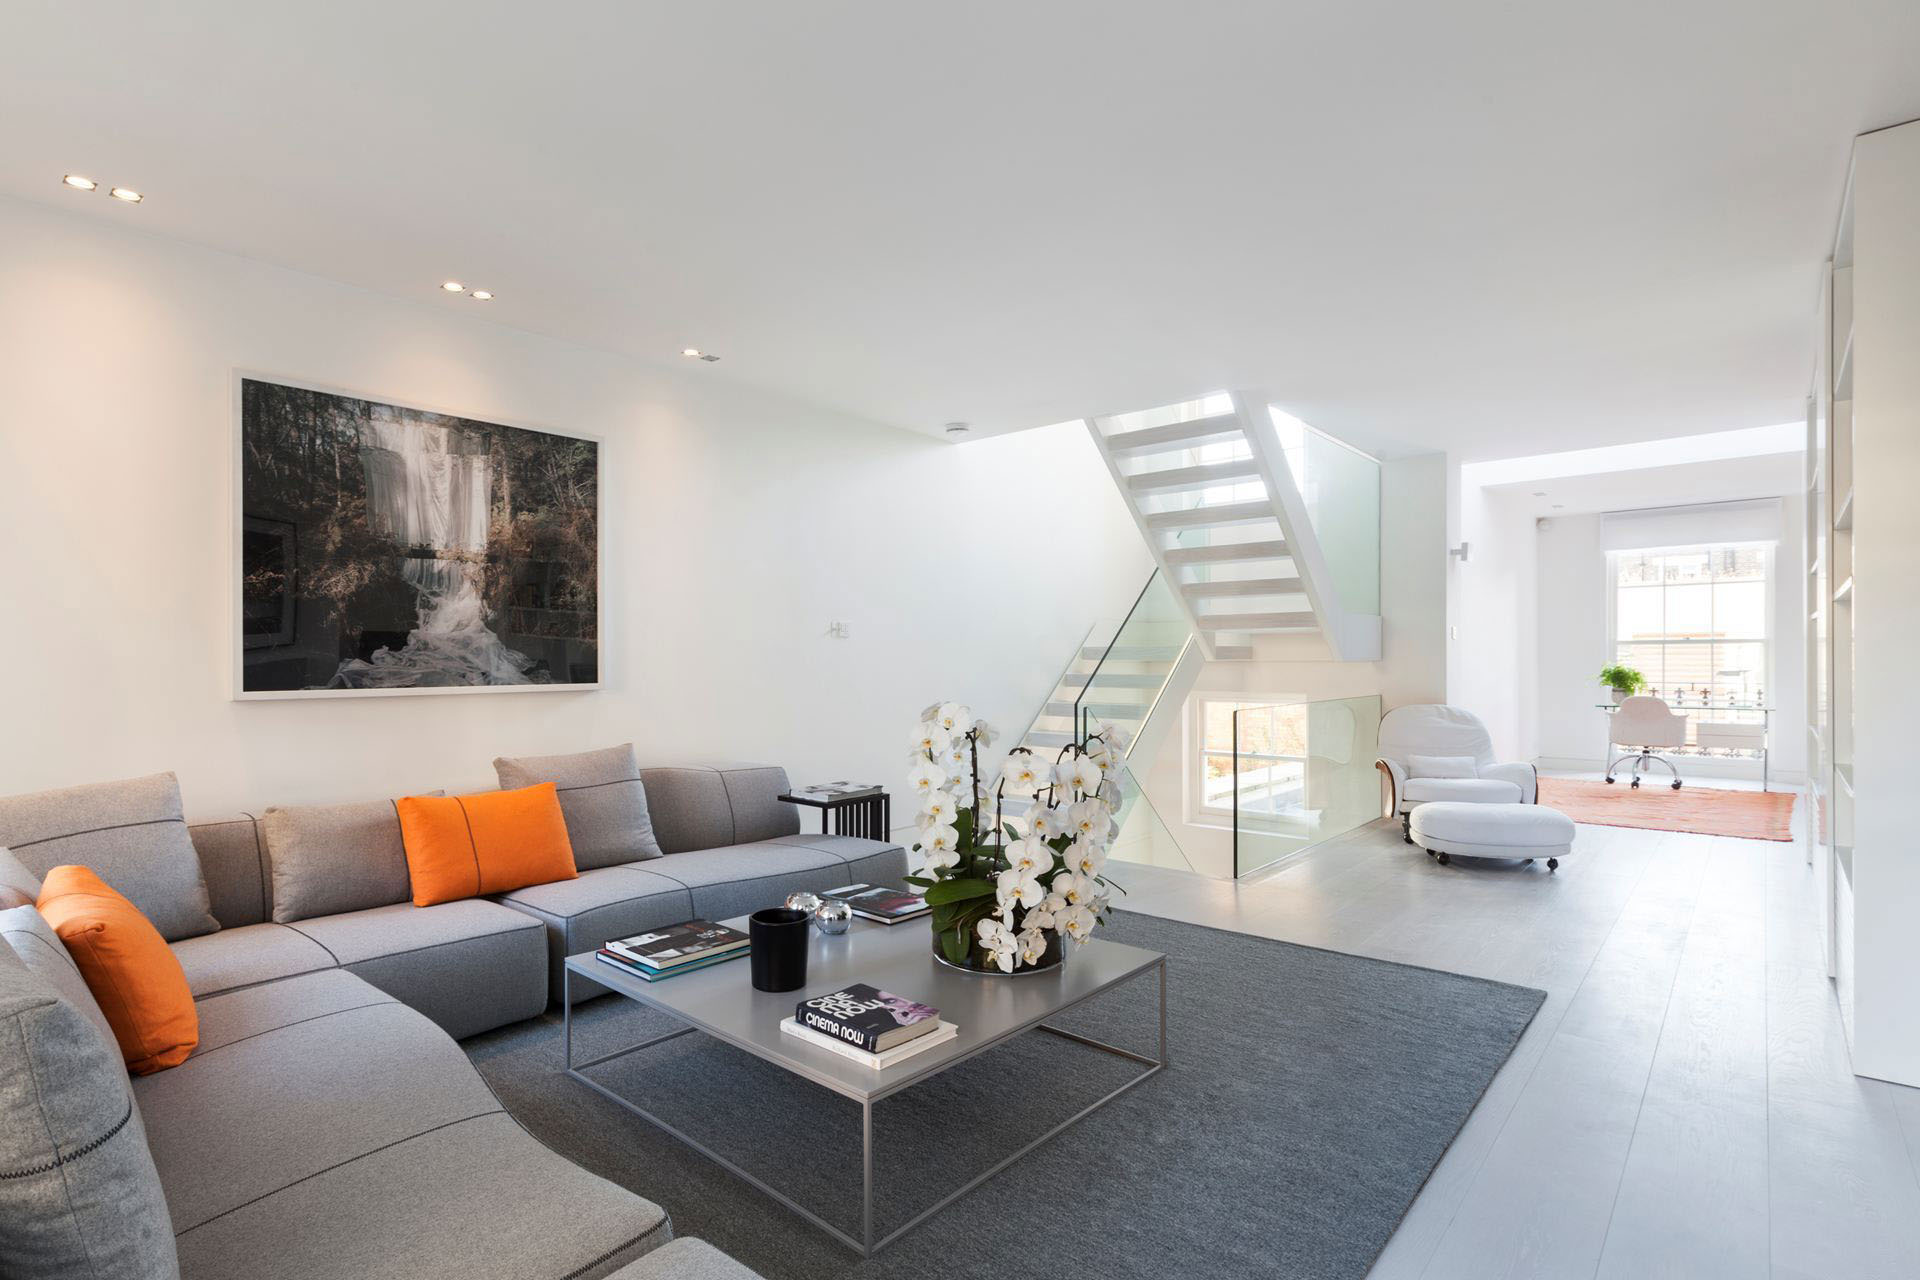 Exquisite Contemporary House Near Kensington Gardens   iDesignArch     Contemporary Luxury Home in Kensington London